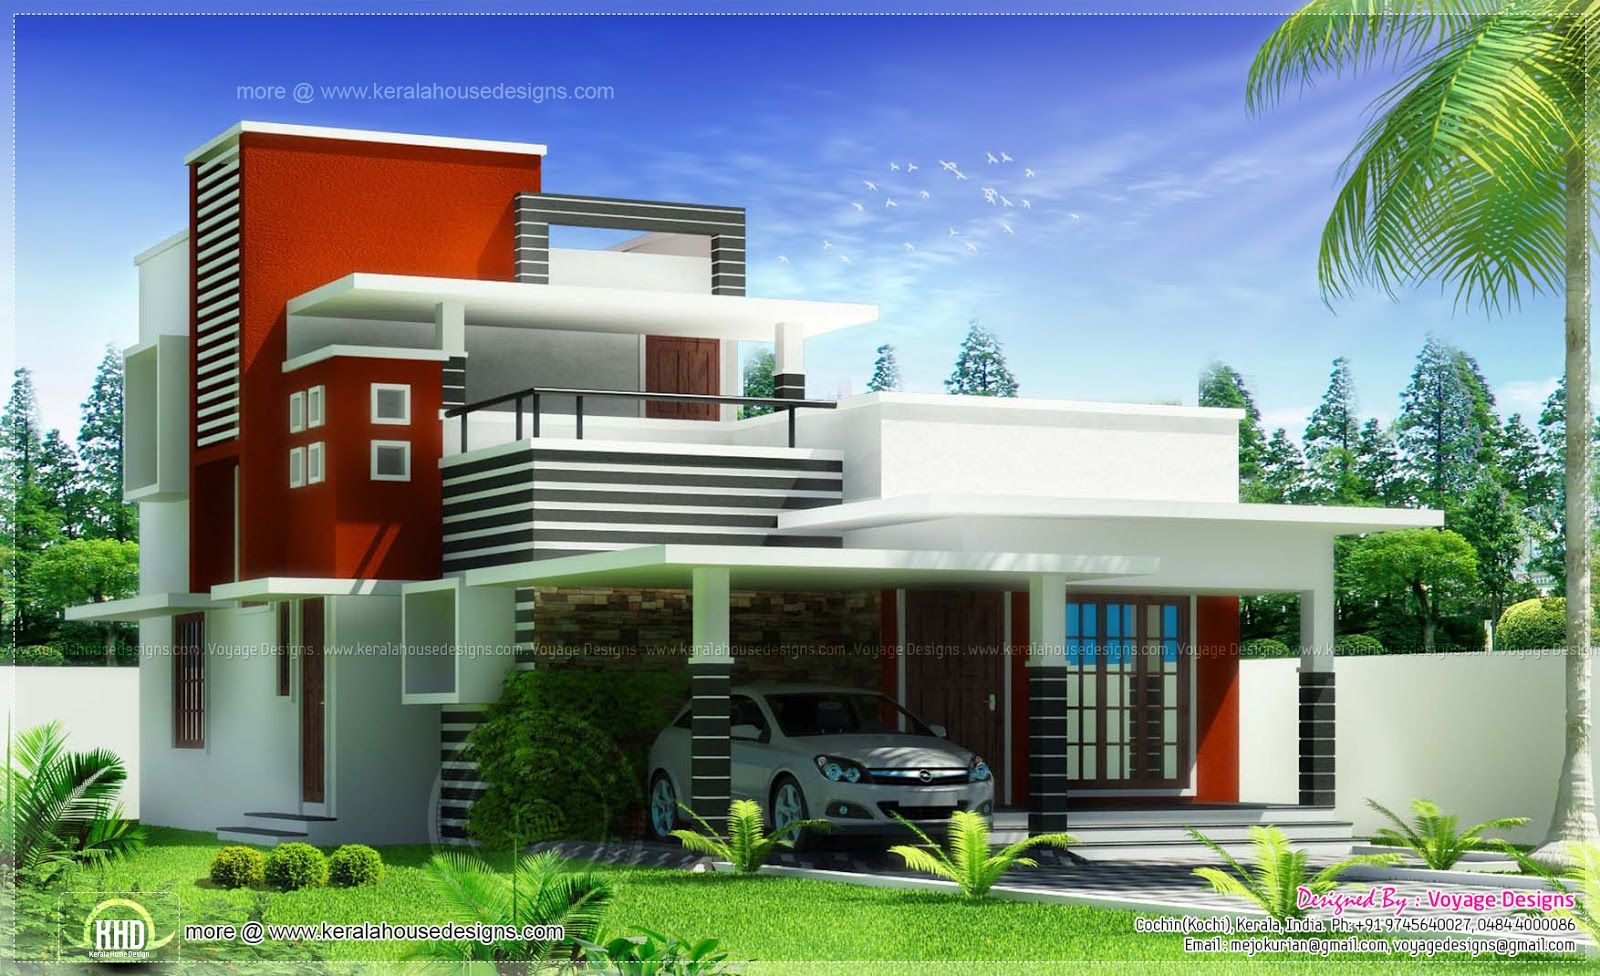 Kerala house designs architecture pinterest kerala for Modern home design 2015